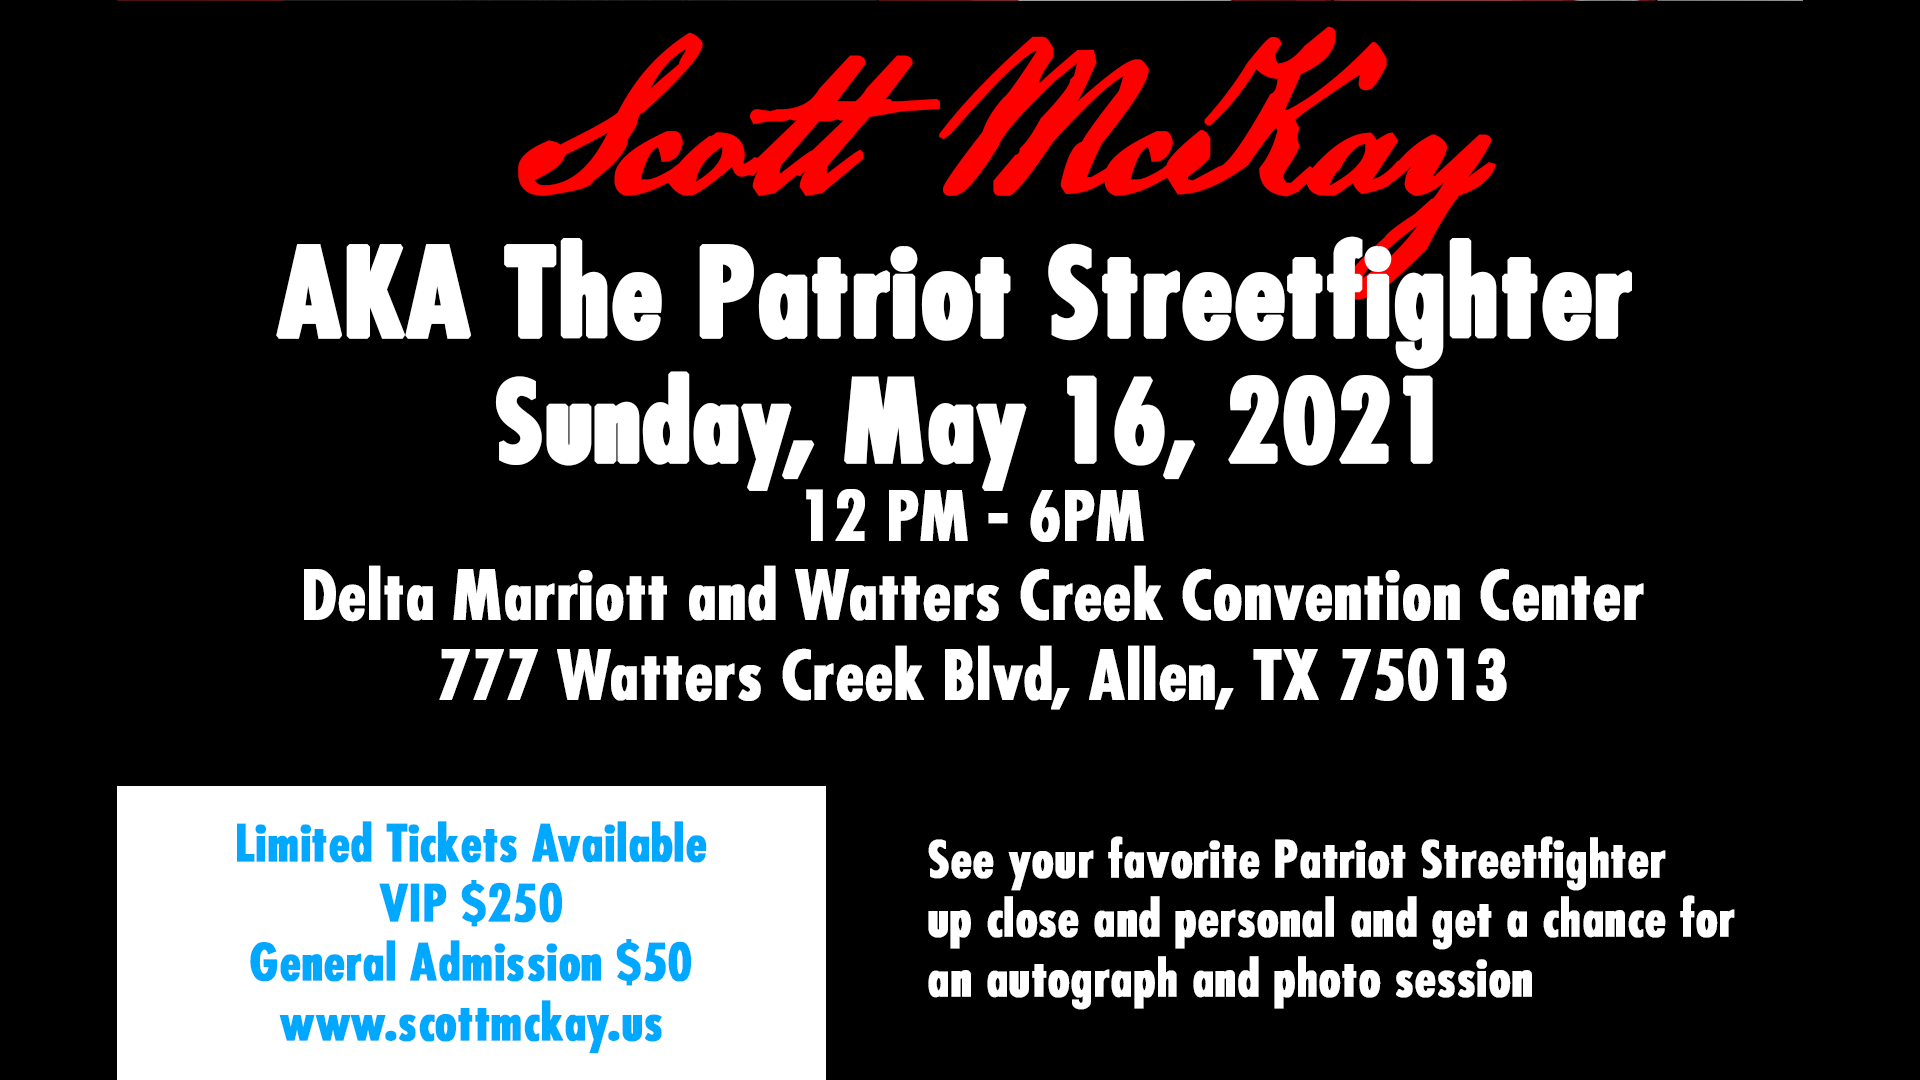 Photo for Scott McKay's 'Calling Down the Thunder' Meet and Greet Fundraiser Dallas on ViewStub